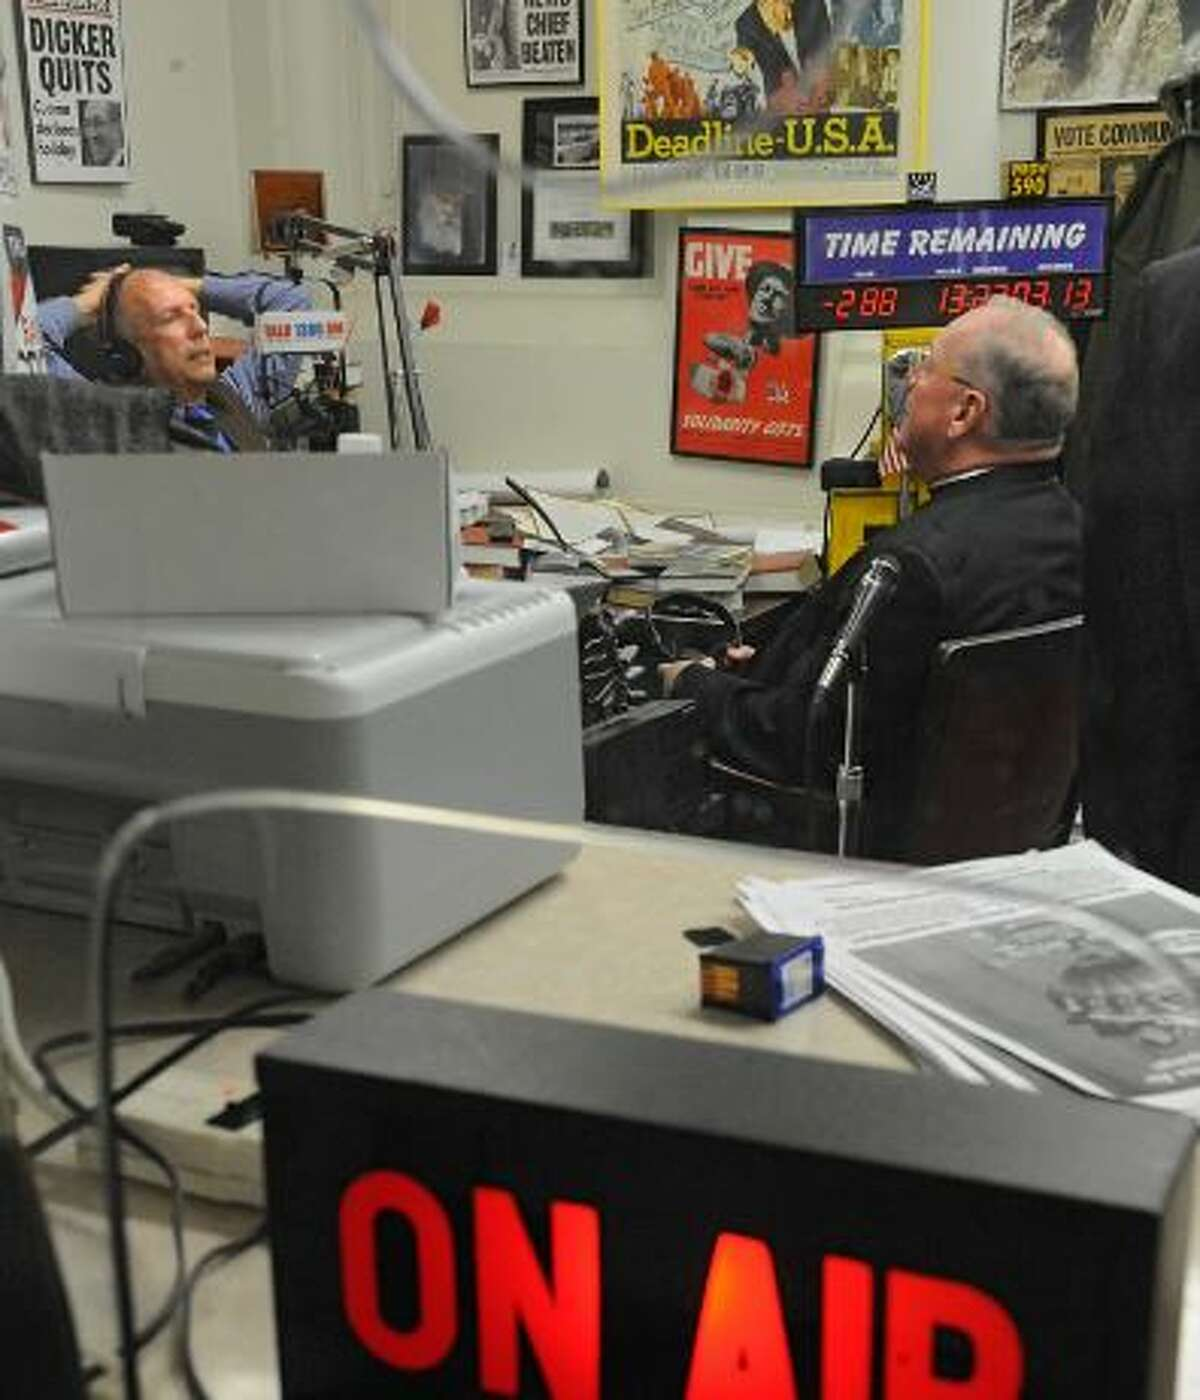 New York Post reporter Fred Dicker, left, interviews Cardinal Archbishop Timothy Dolan in the New York Post bureau office at the Capitol on Tuesday, March 18, 2014 in Albany, N.Y.